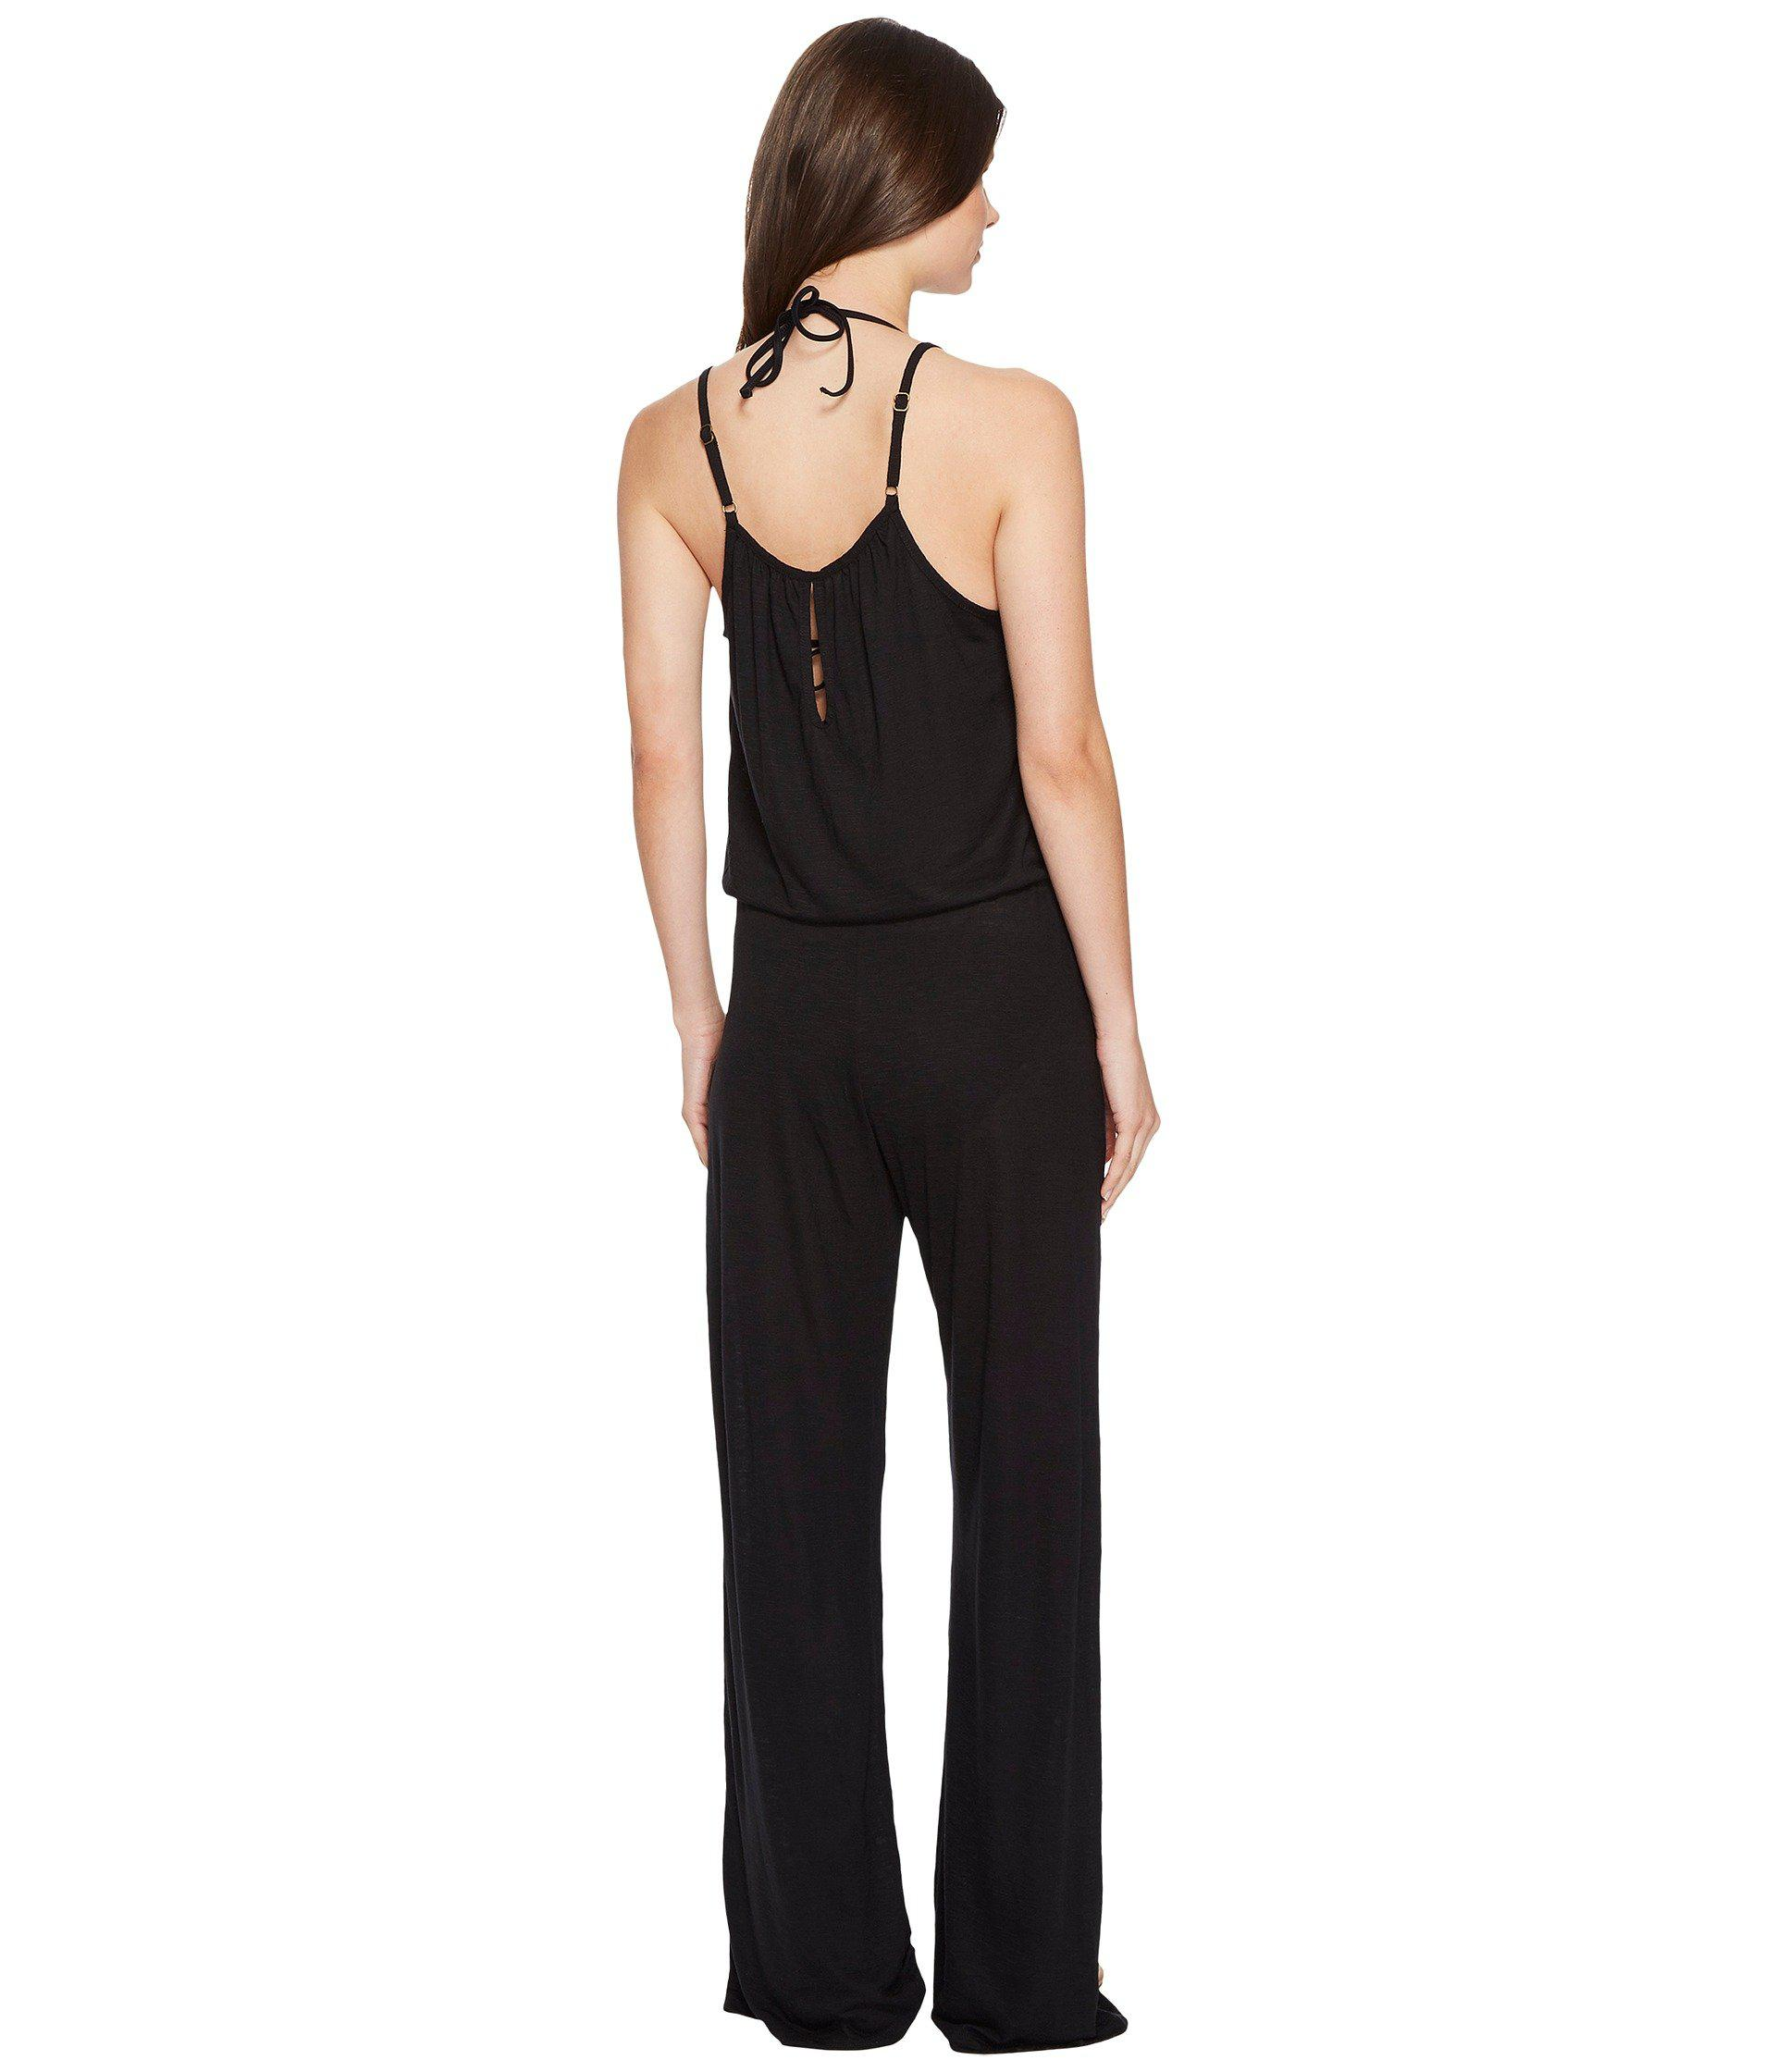 ced44ee1ac251 Lyst - Becca Breezy Basics Jumpsuit Cover-up in Black